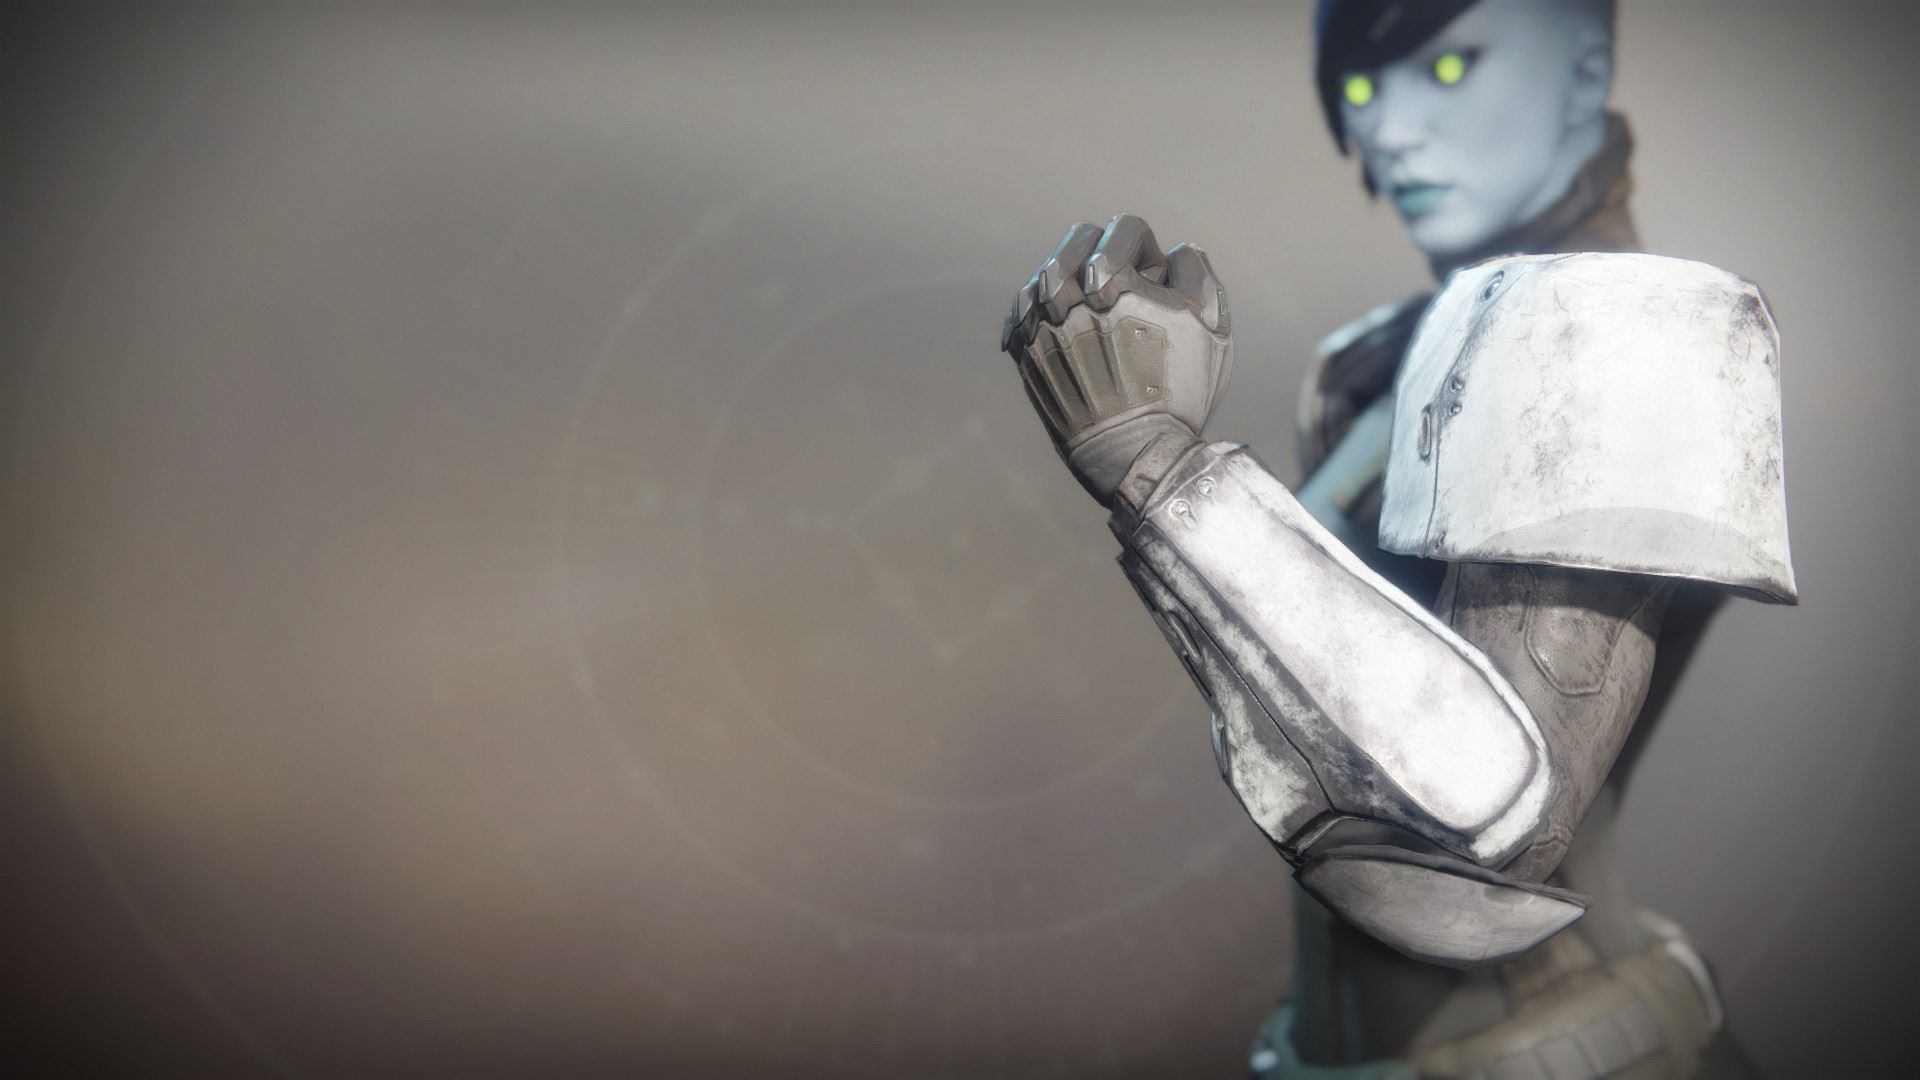 An in-game render of the Solstice Gauntlets (Rekindled).